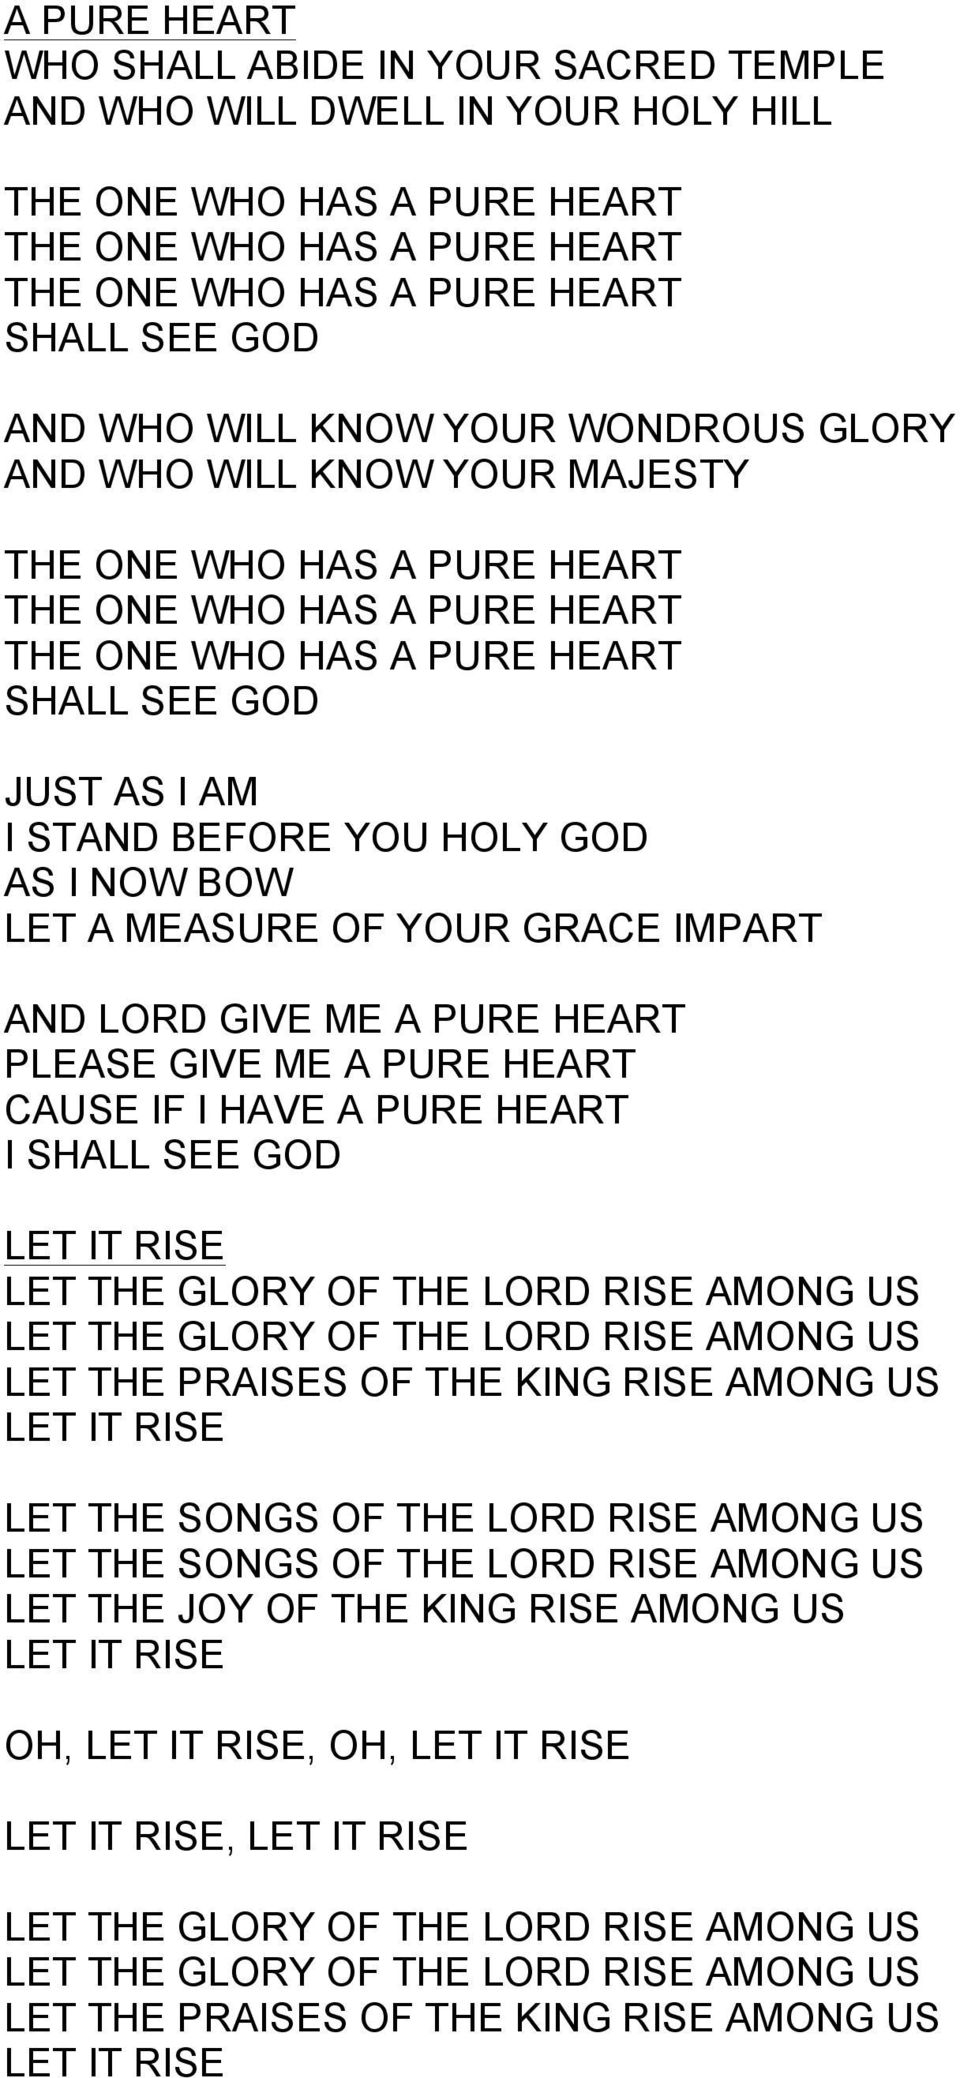 GLORY OF THE LORD RISE AMONG US LET THE GLORY OF THE LORD RISE AMONG US LET THE PRAISES OF THE KING RISE AMONG US LET IT RISE LET THE SONGS OF THE LORD RISE AMONG US LET THE SONGS OF THE LORD RISE